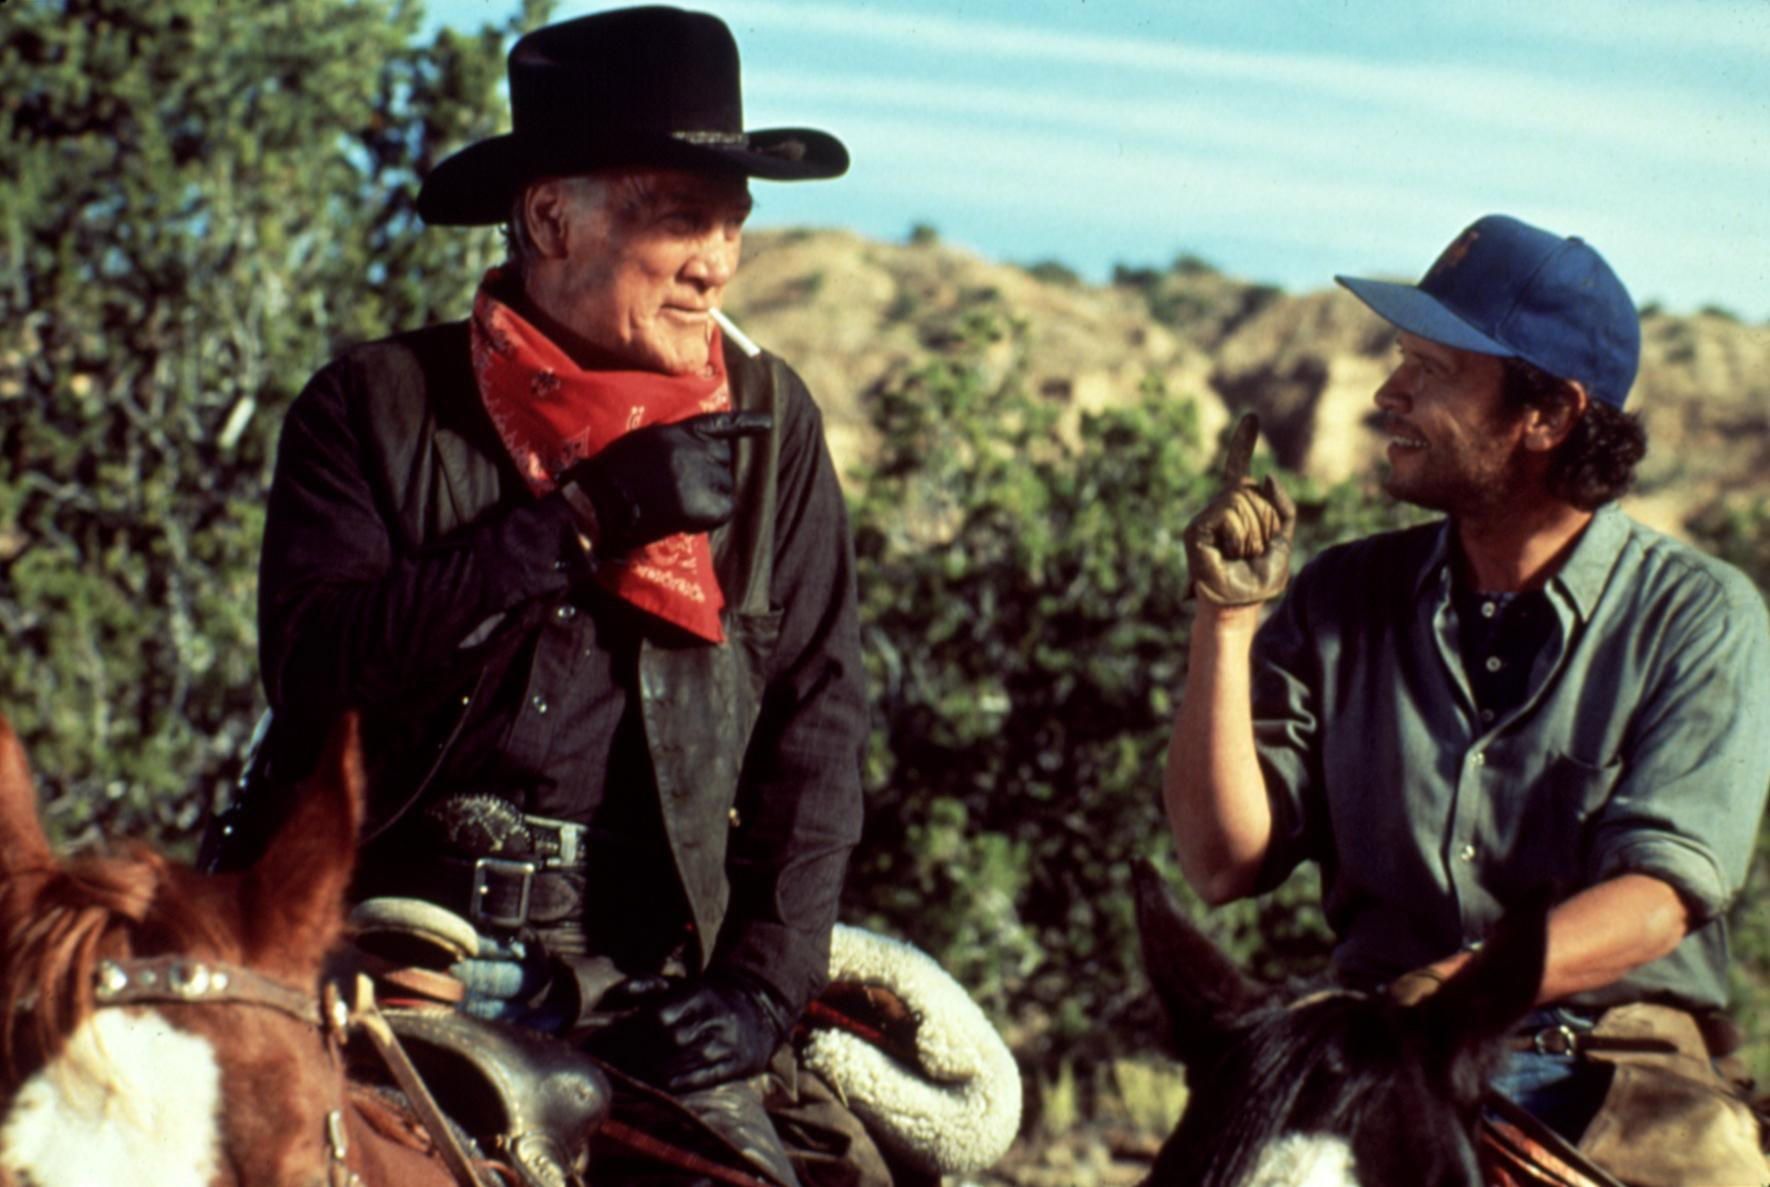 afaf91a0 c570 11eb 8ebf cca592cc8fe5 City Slickers: 10 Facts About The 90s' Wackiest Western